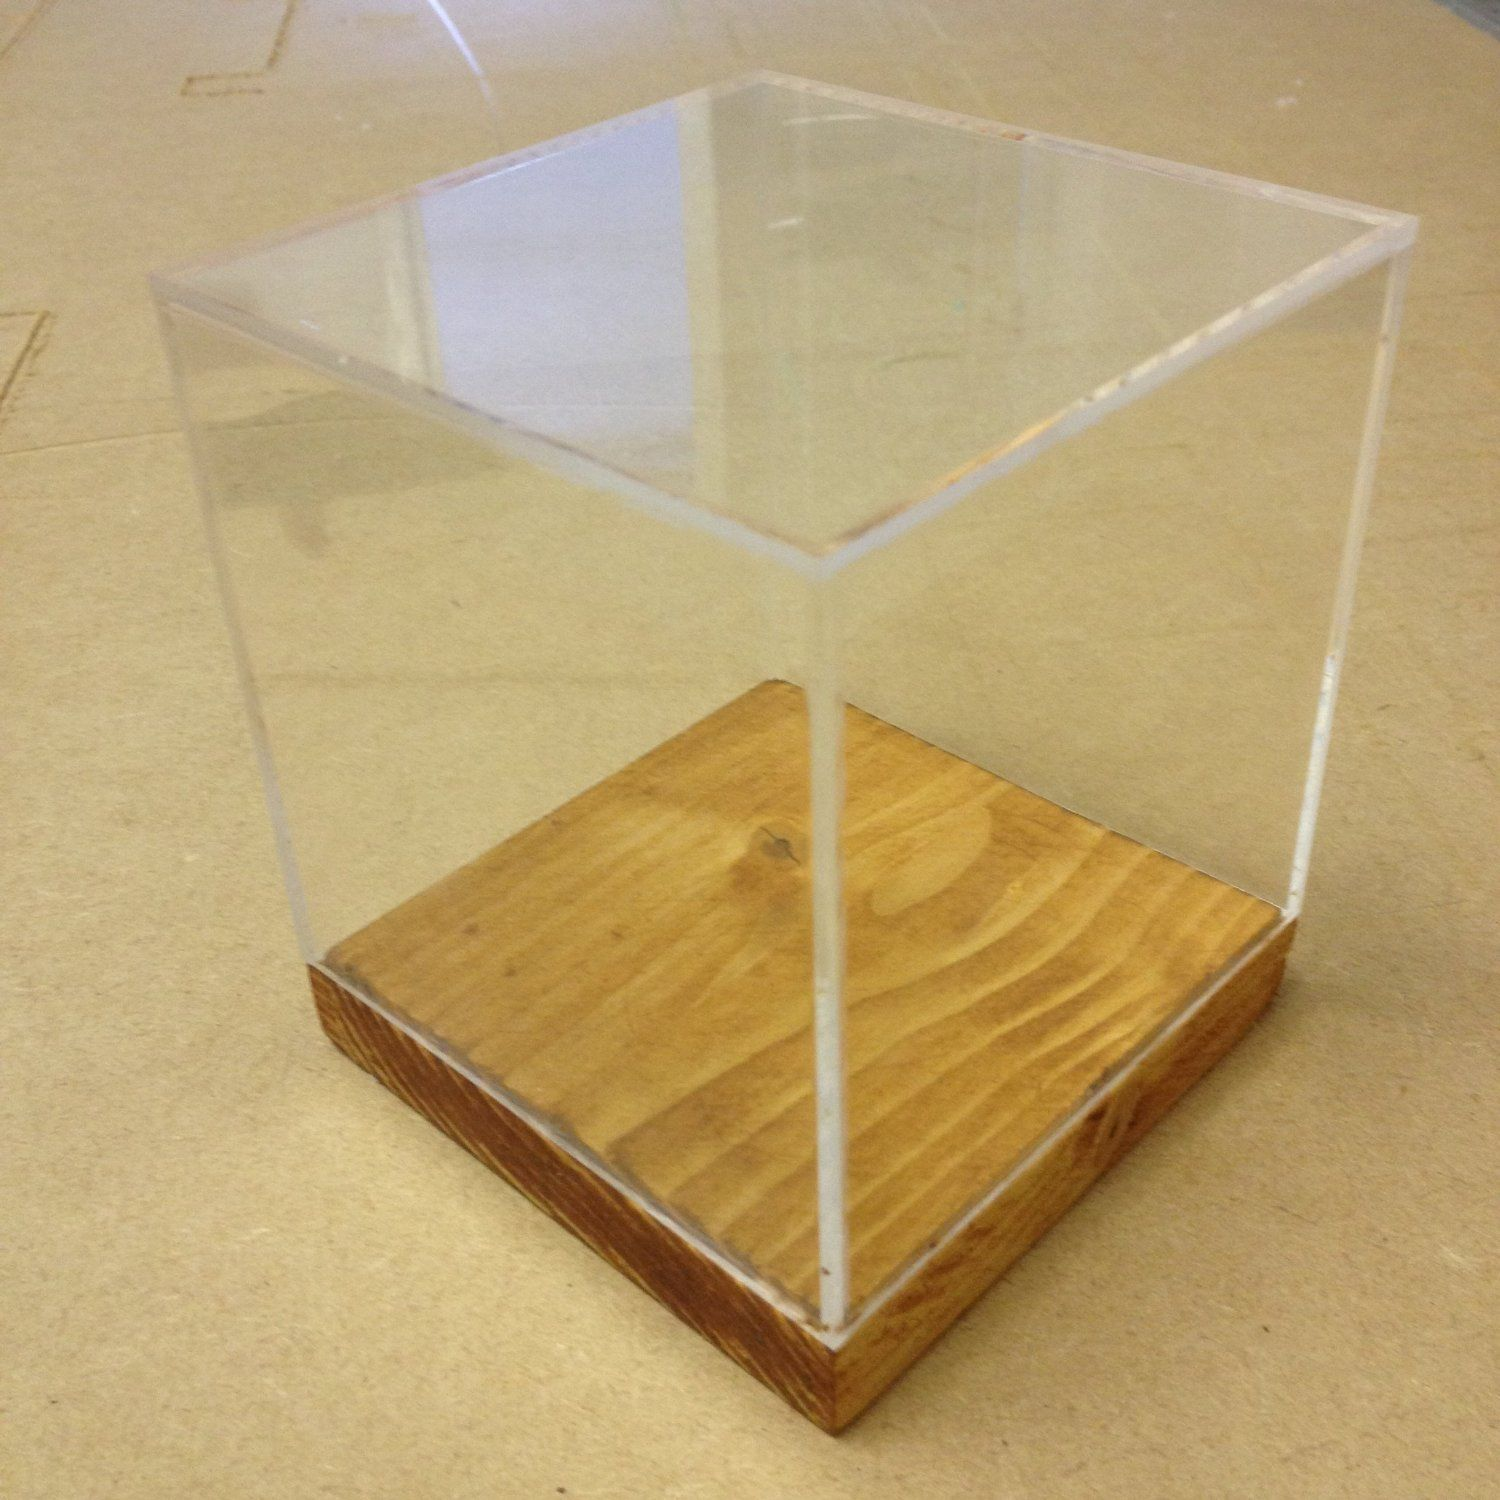 Clear Display Boxes 5 Sided Clear Acrylic Box Cube Display Case Cake